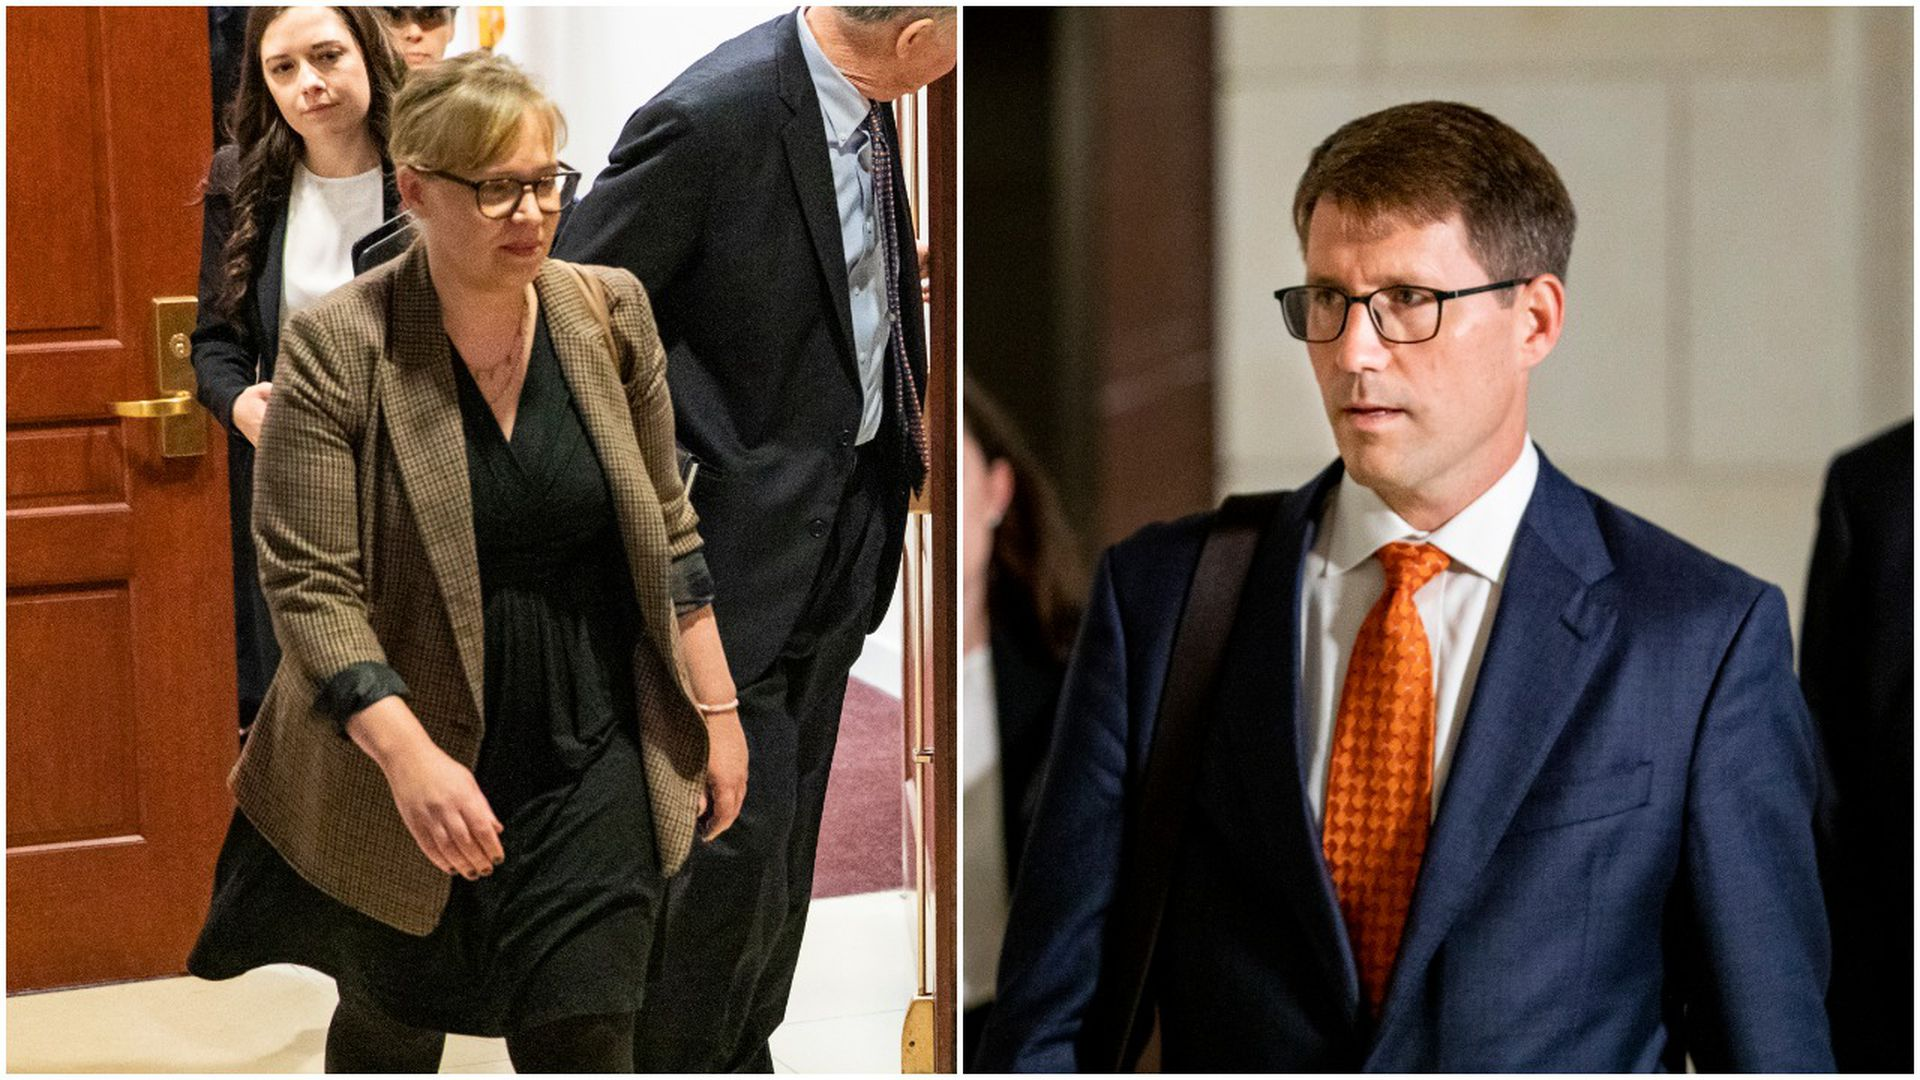 This image is a split screen between Croft and Anderson, who are both walking down hallways in Congress